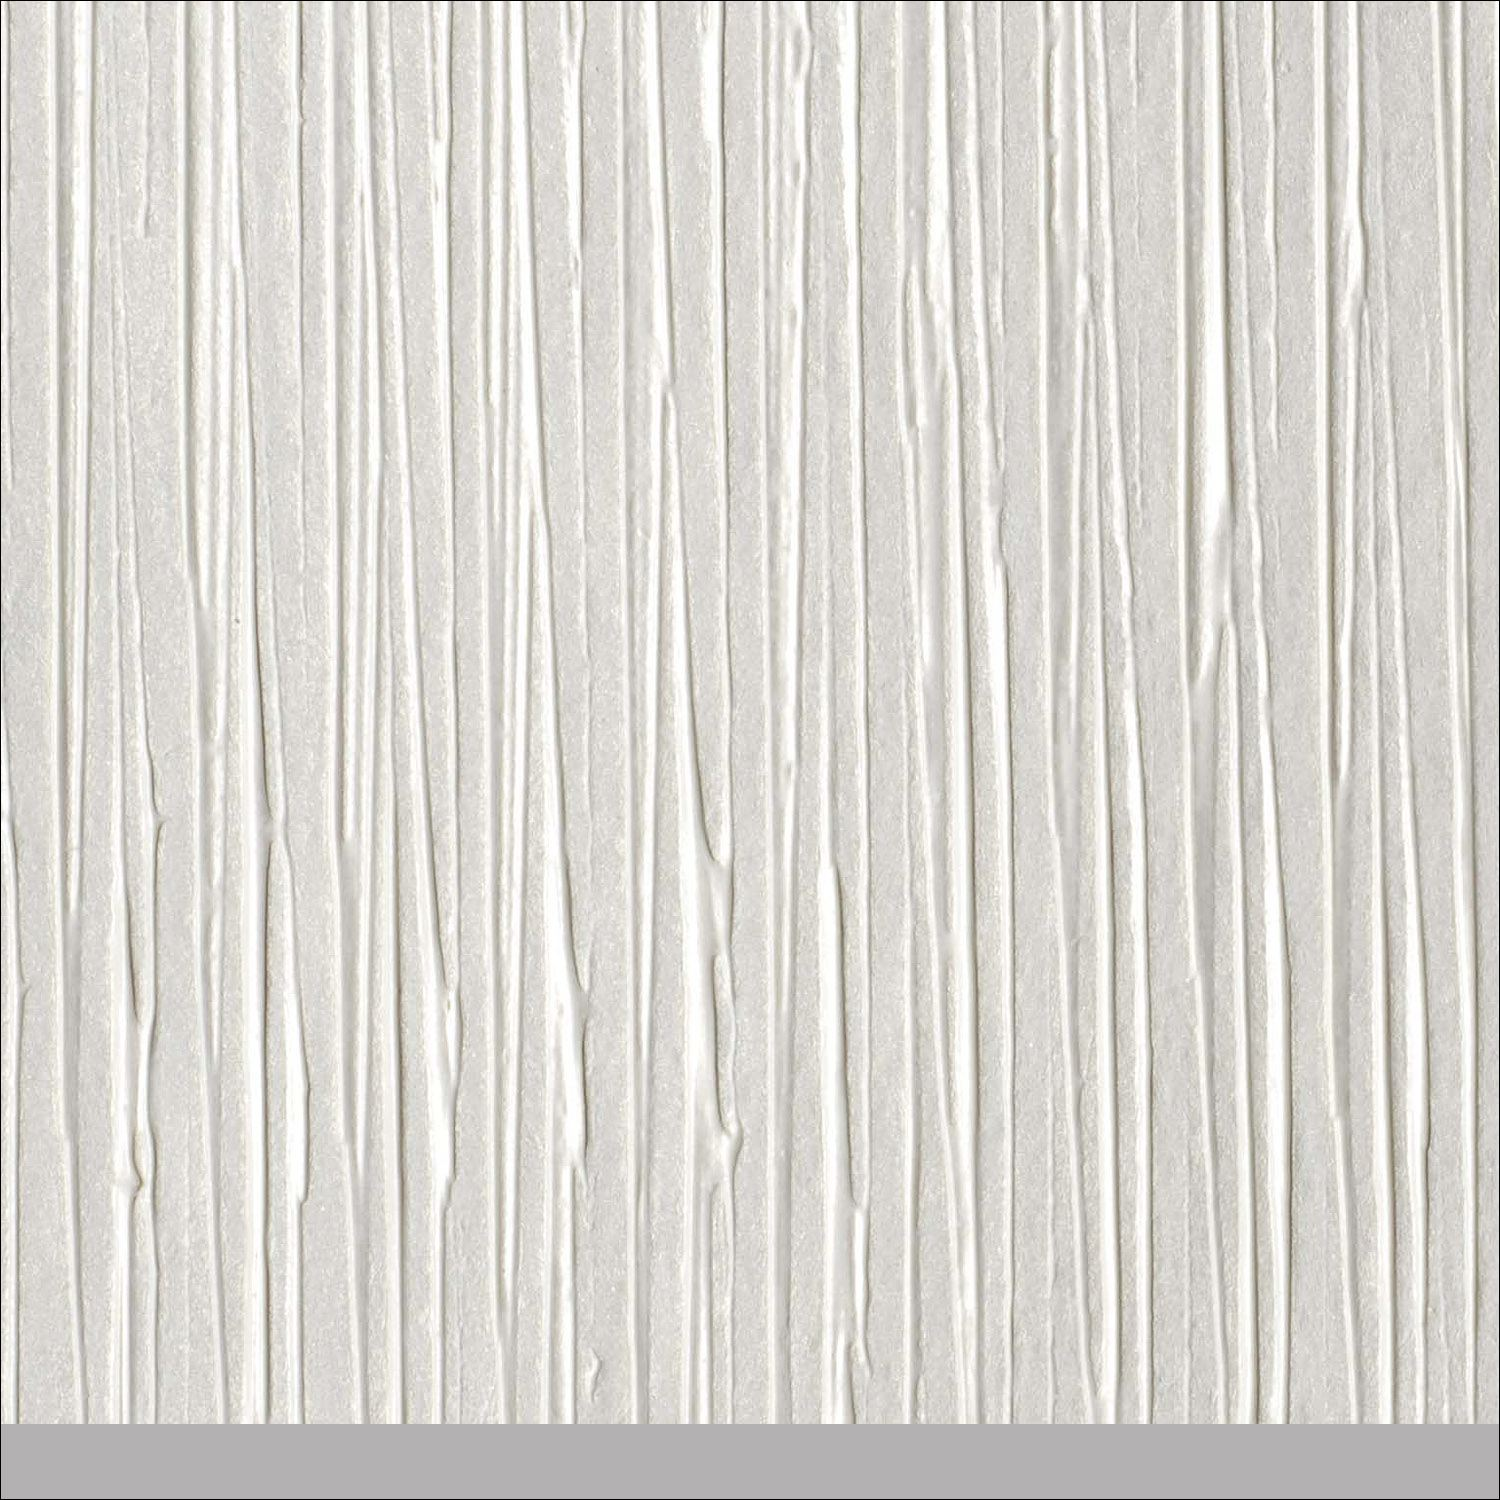 Silver Wallpaper For Walls Hand painted wall paper 1500x1500